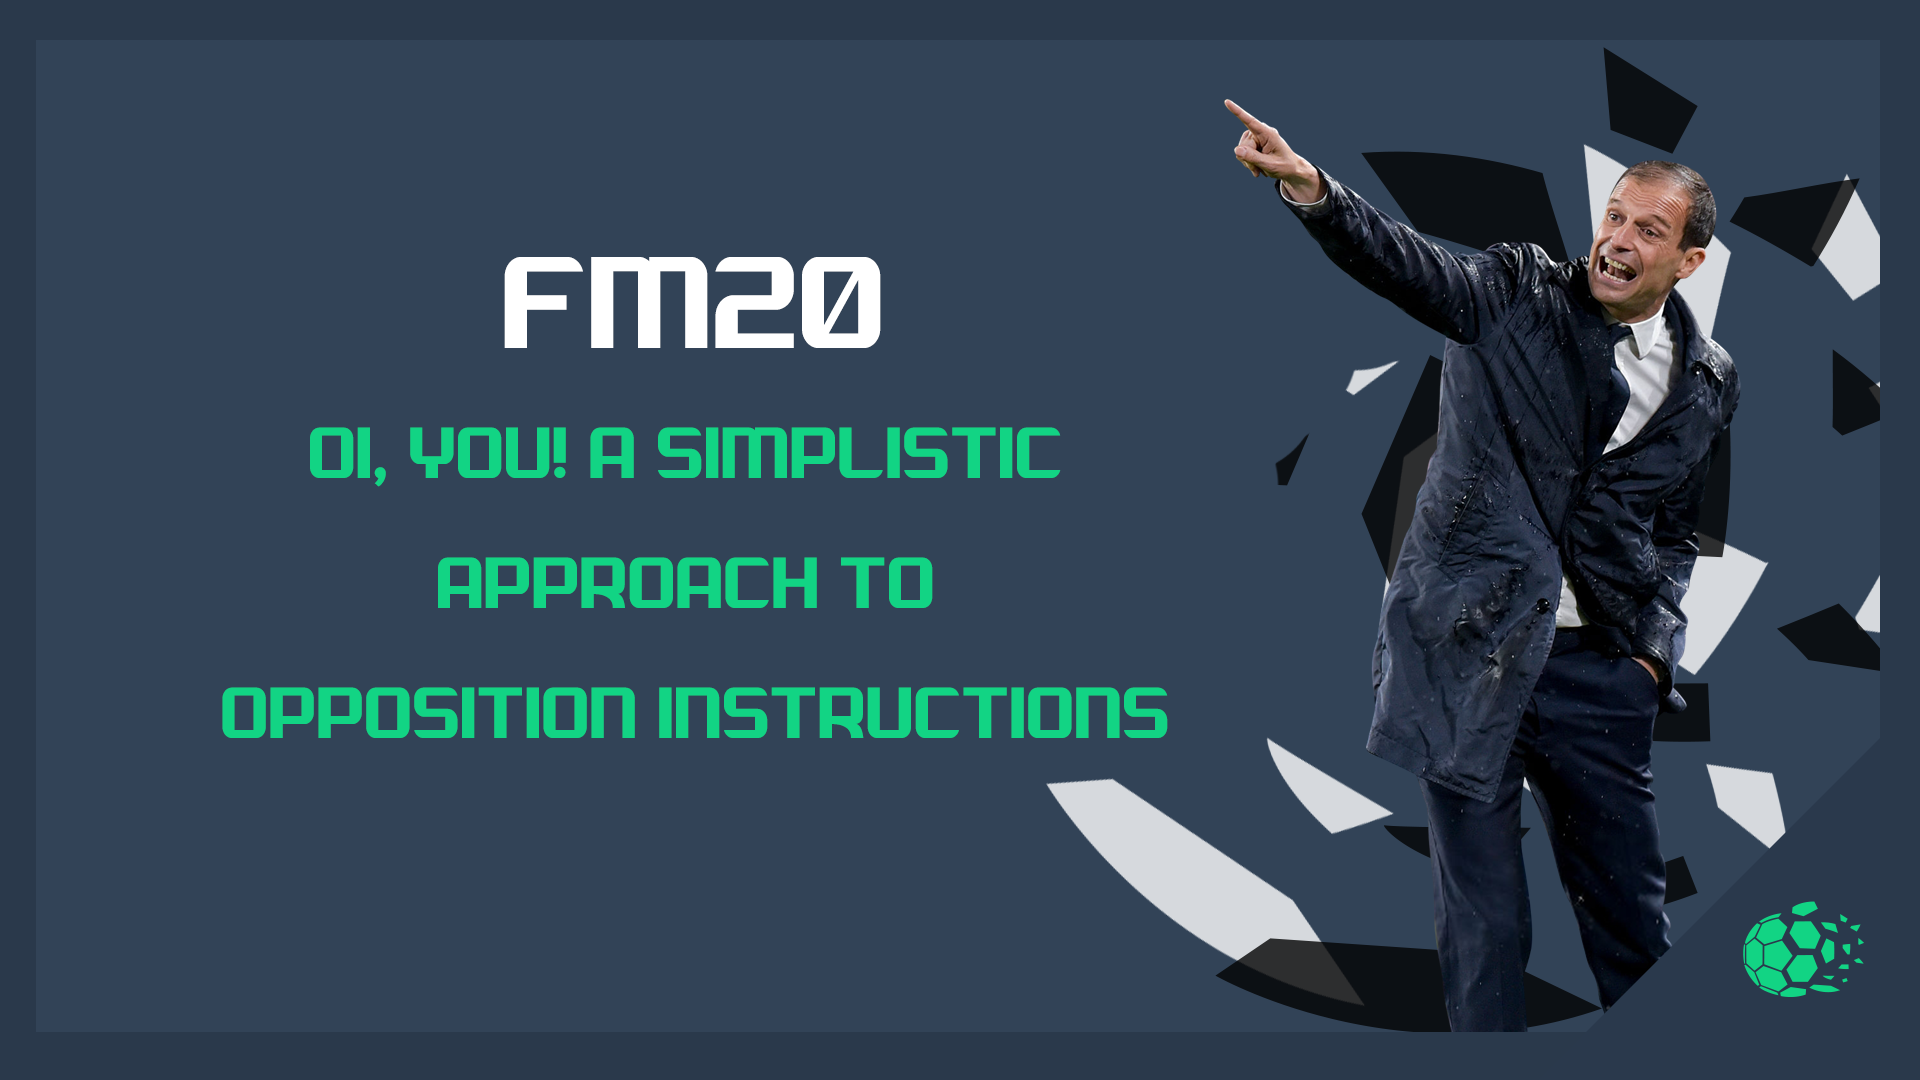 """FM20 OI, You! A Simplistic Approach To Opposition Instructions"" feature image"